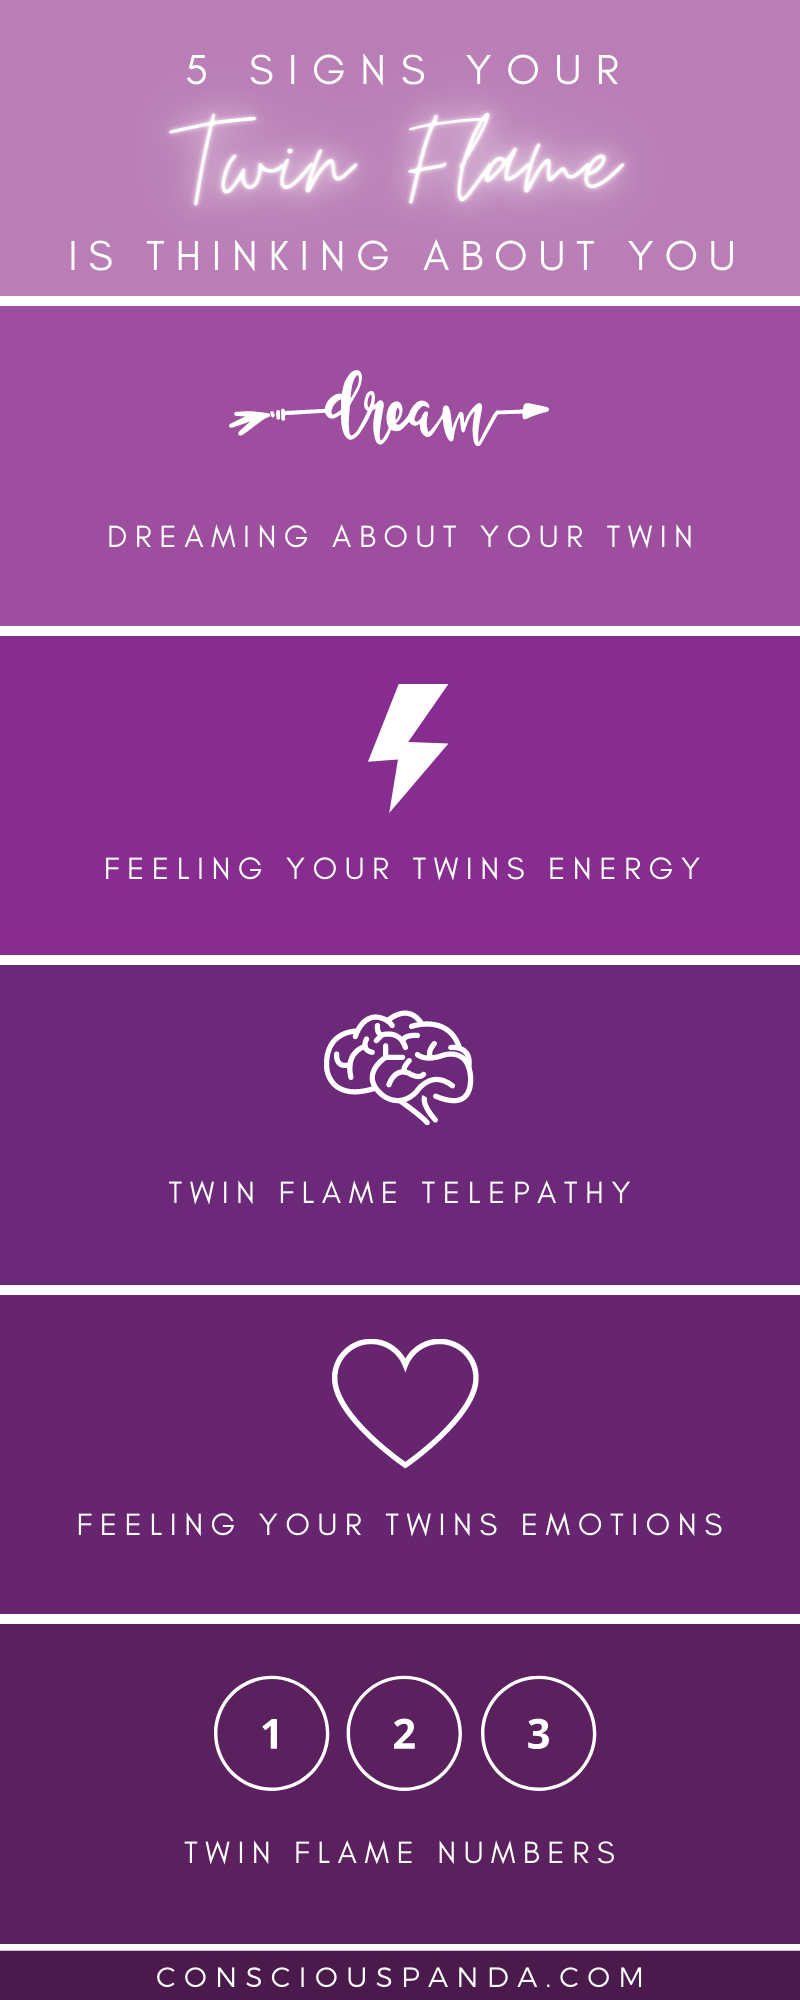 5 Signs your Twin Flame is Thinking About You infographic